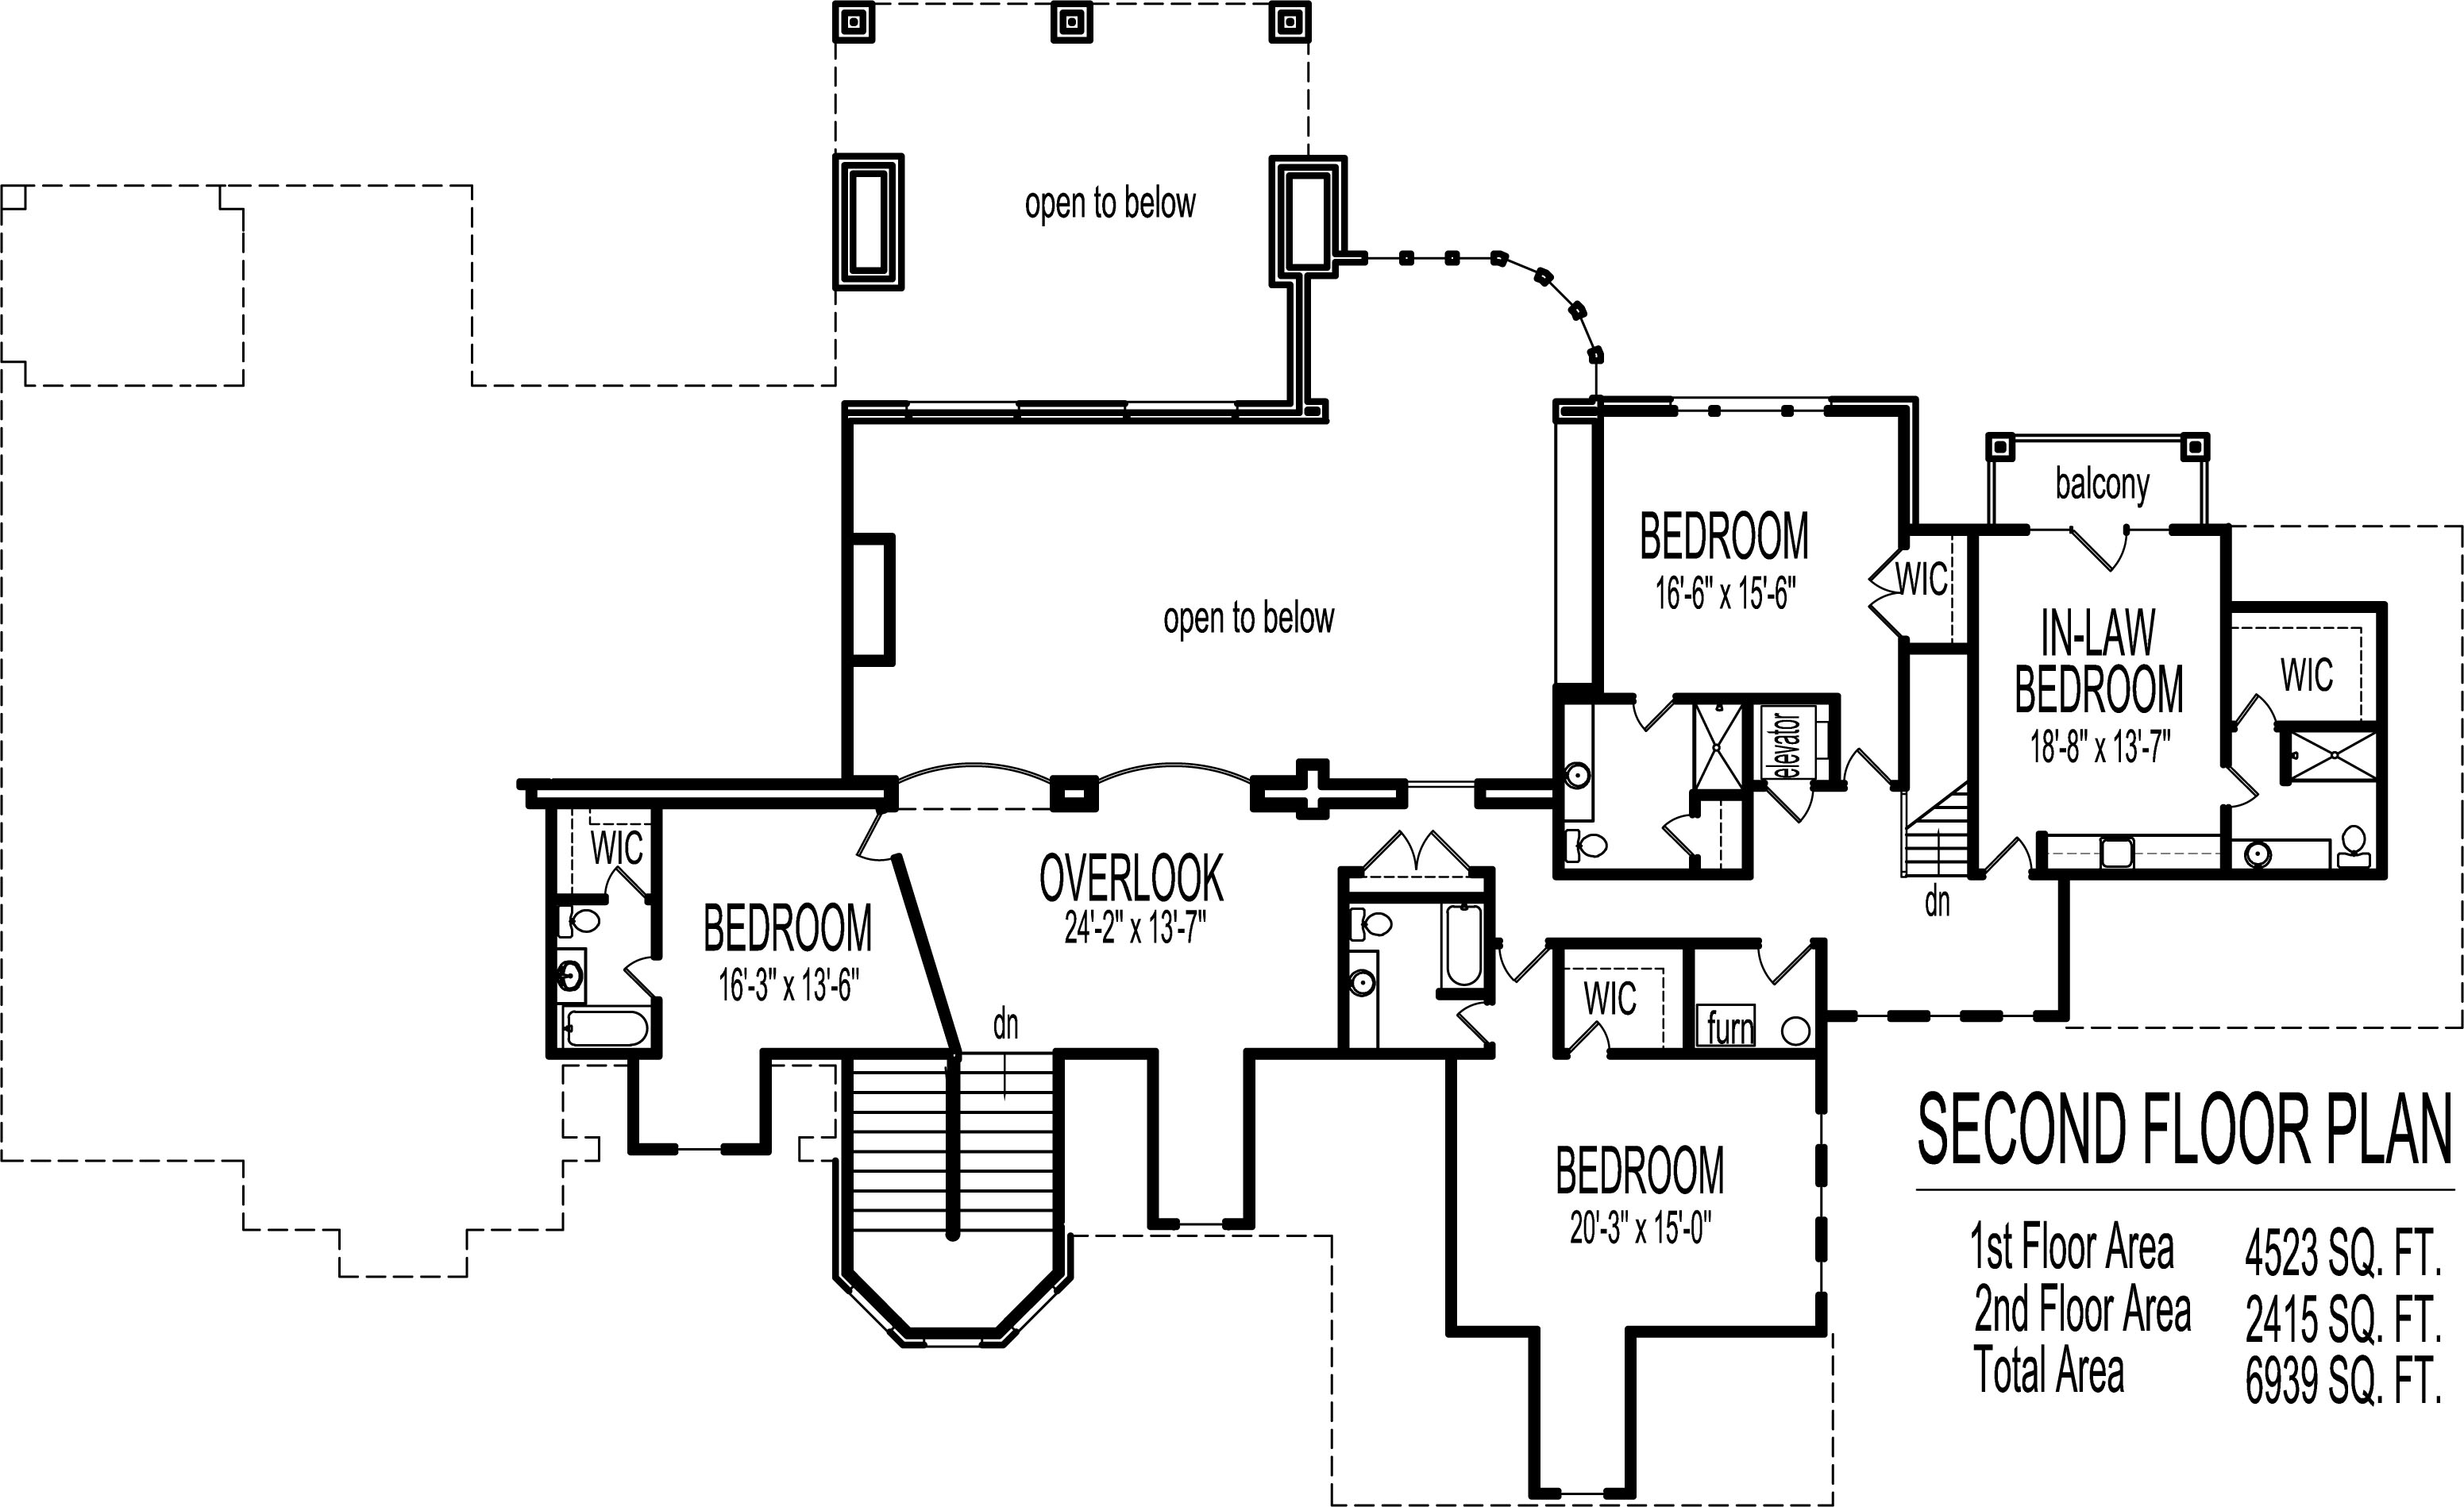 Mansion house floor plans blueprints 6 bedroom 2 story for House blueprints